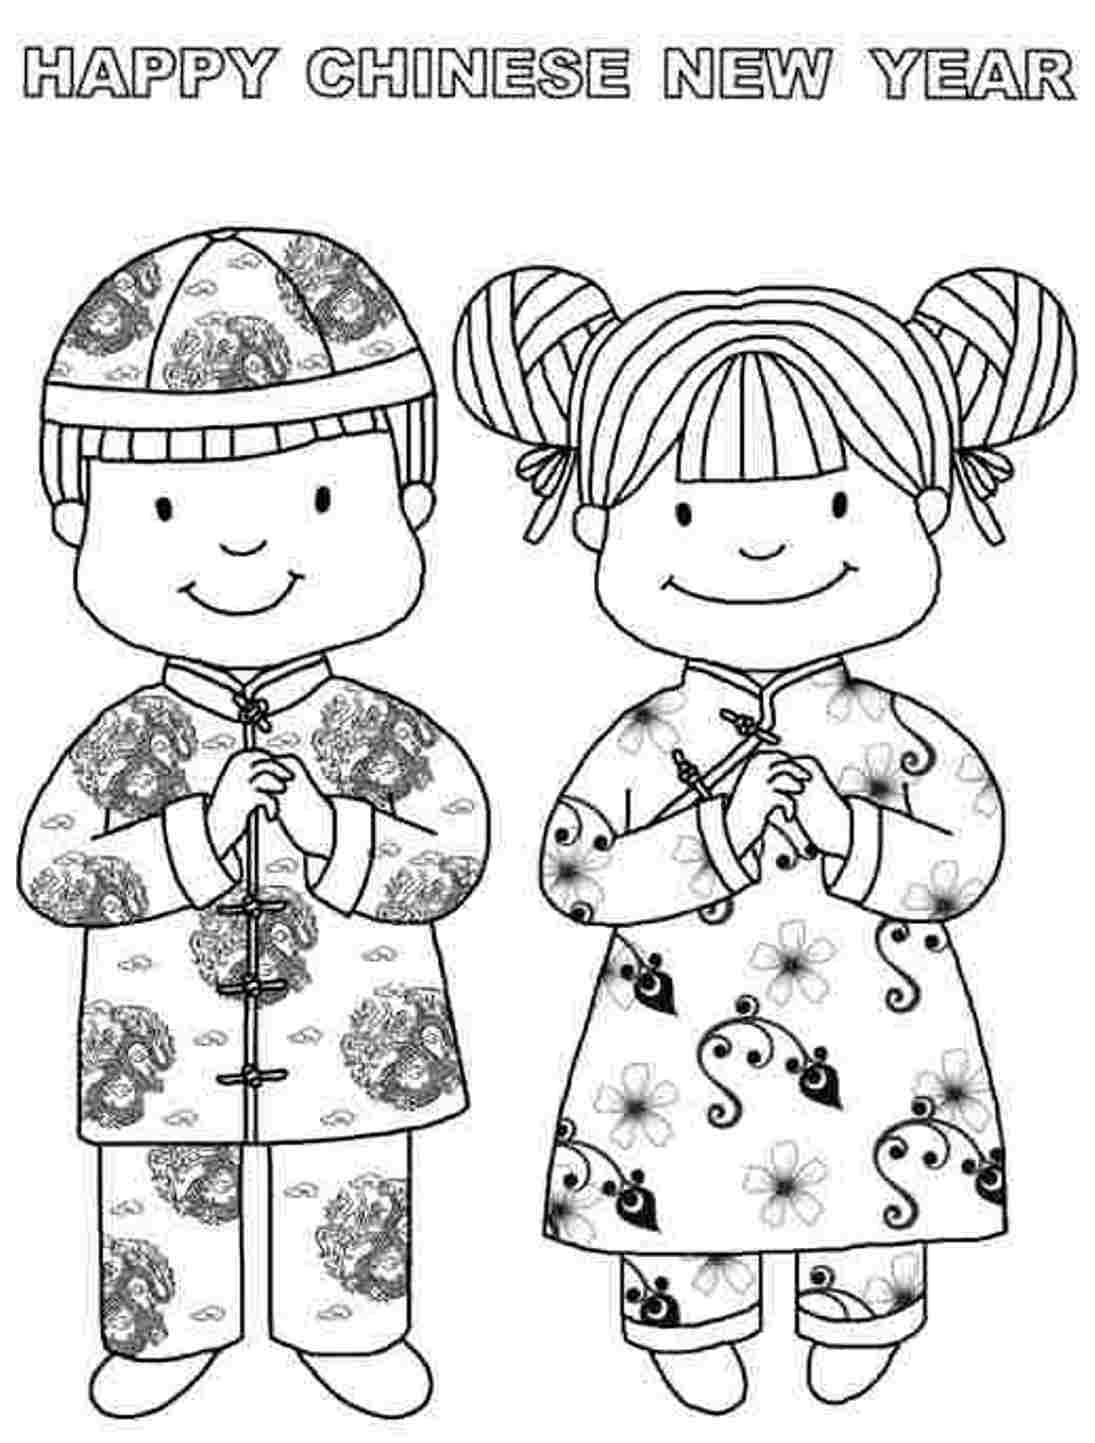 chinese colouring sheets chinese new year coloring pages to download and print for free chinese colouring sheets